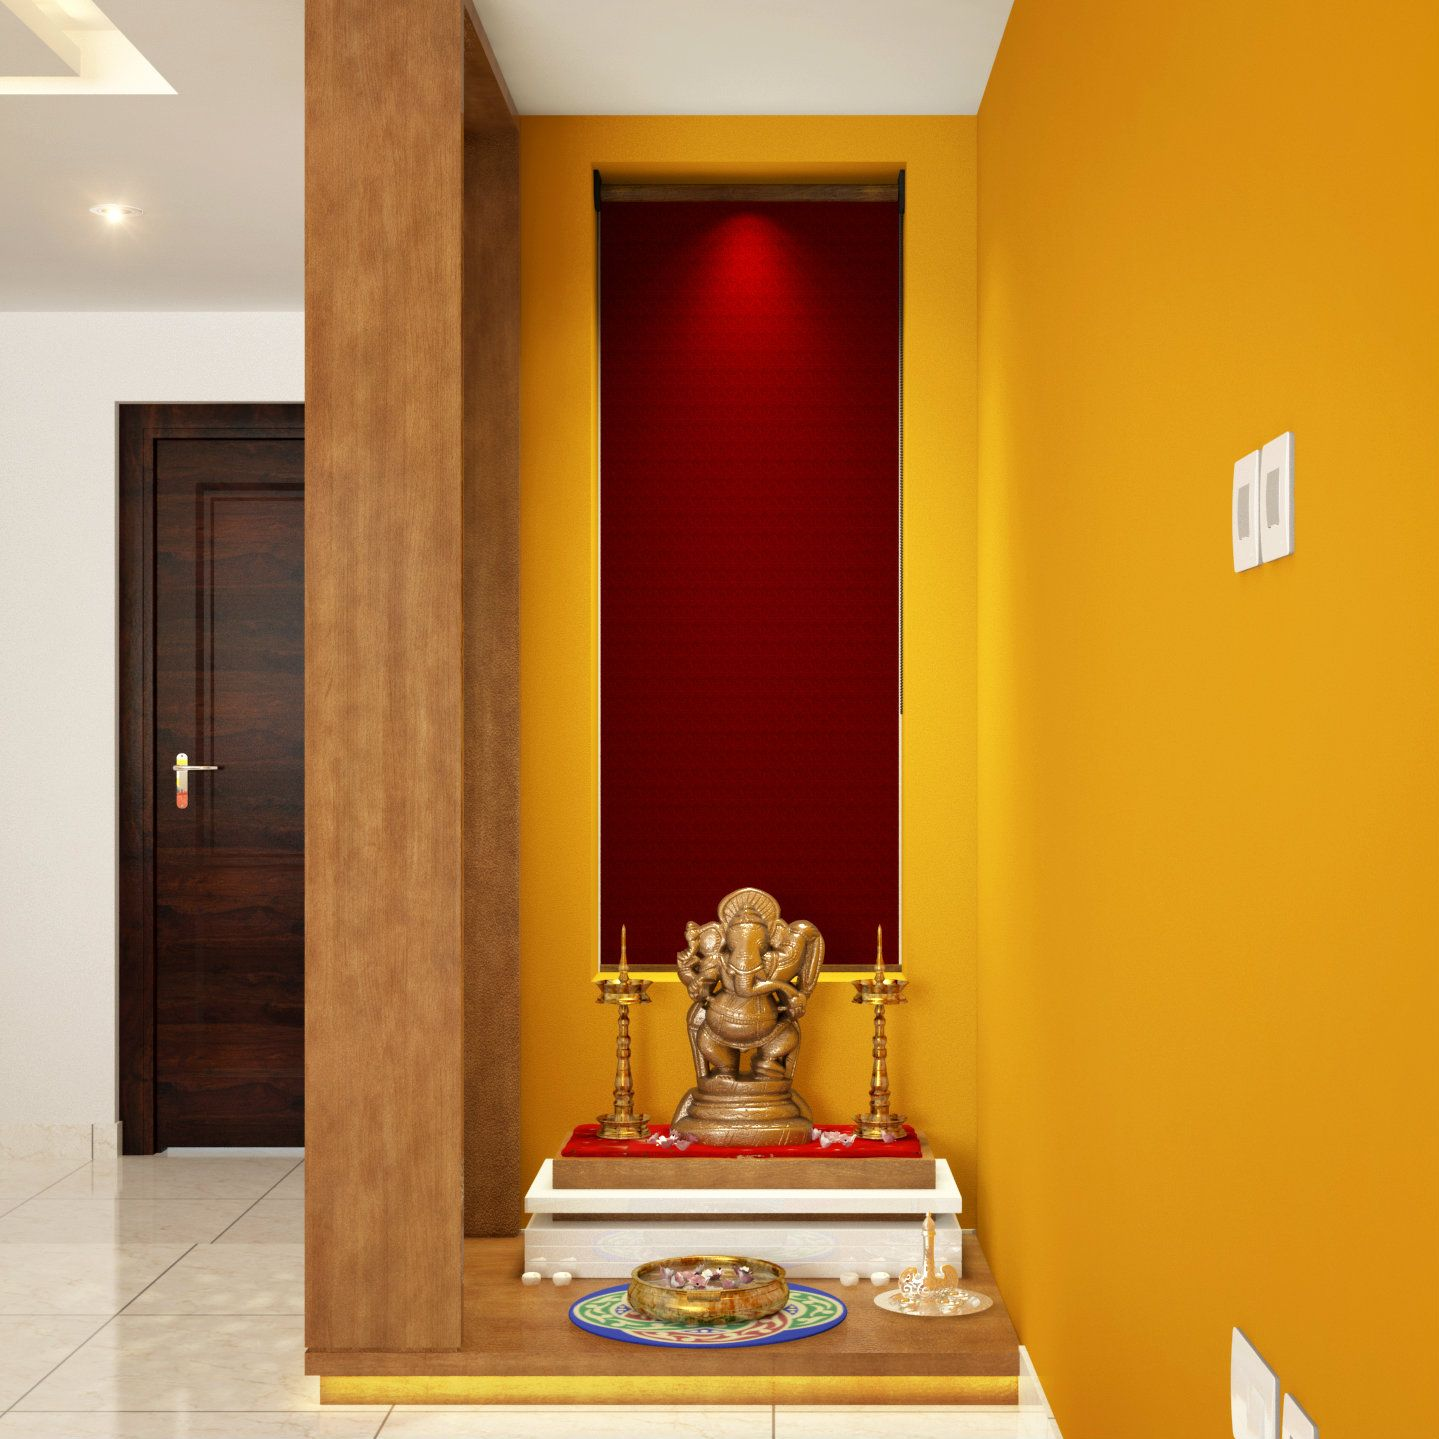 Niche converted to stylish Pooja corner | Pooja Corners | Pinterest ...